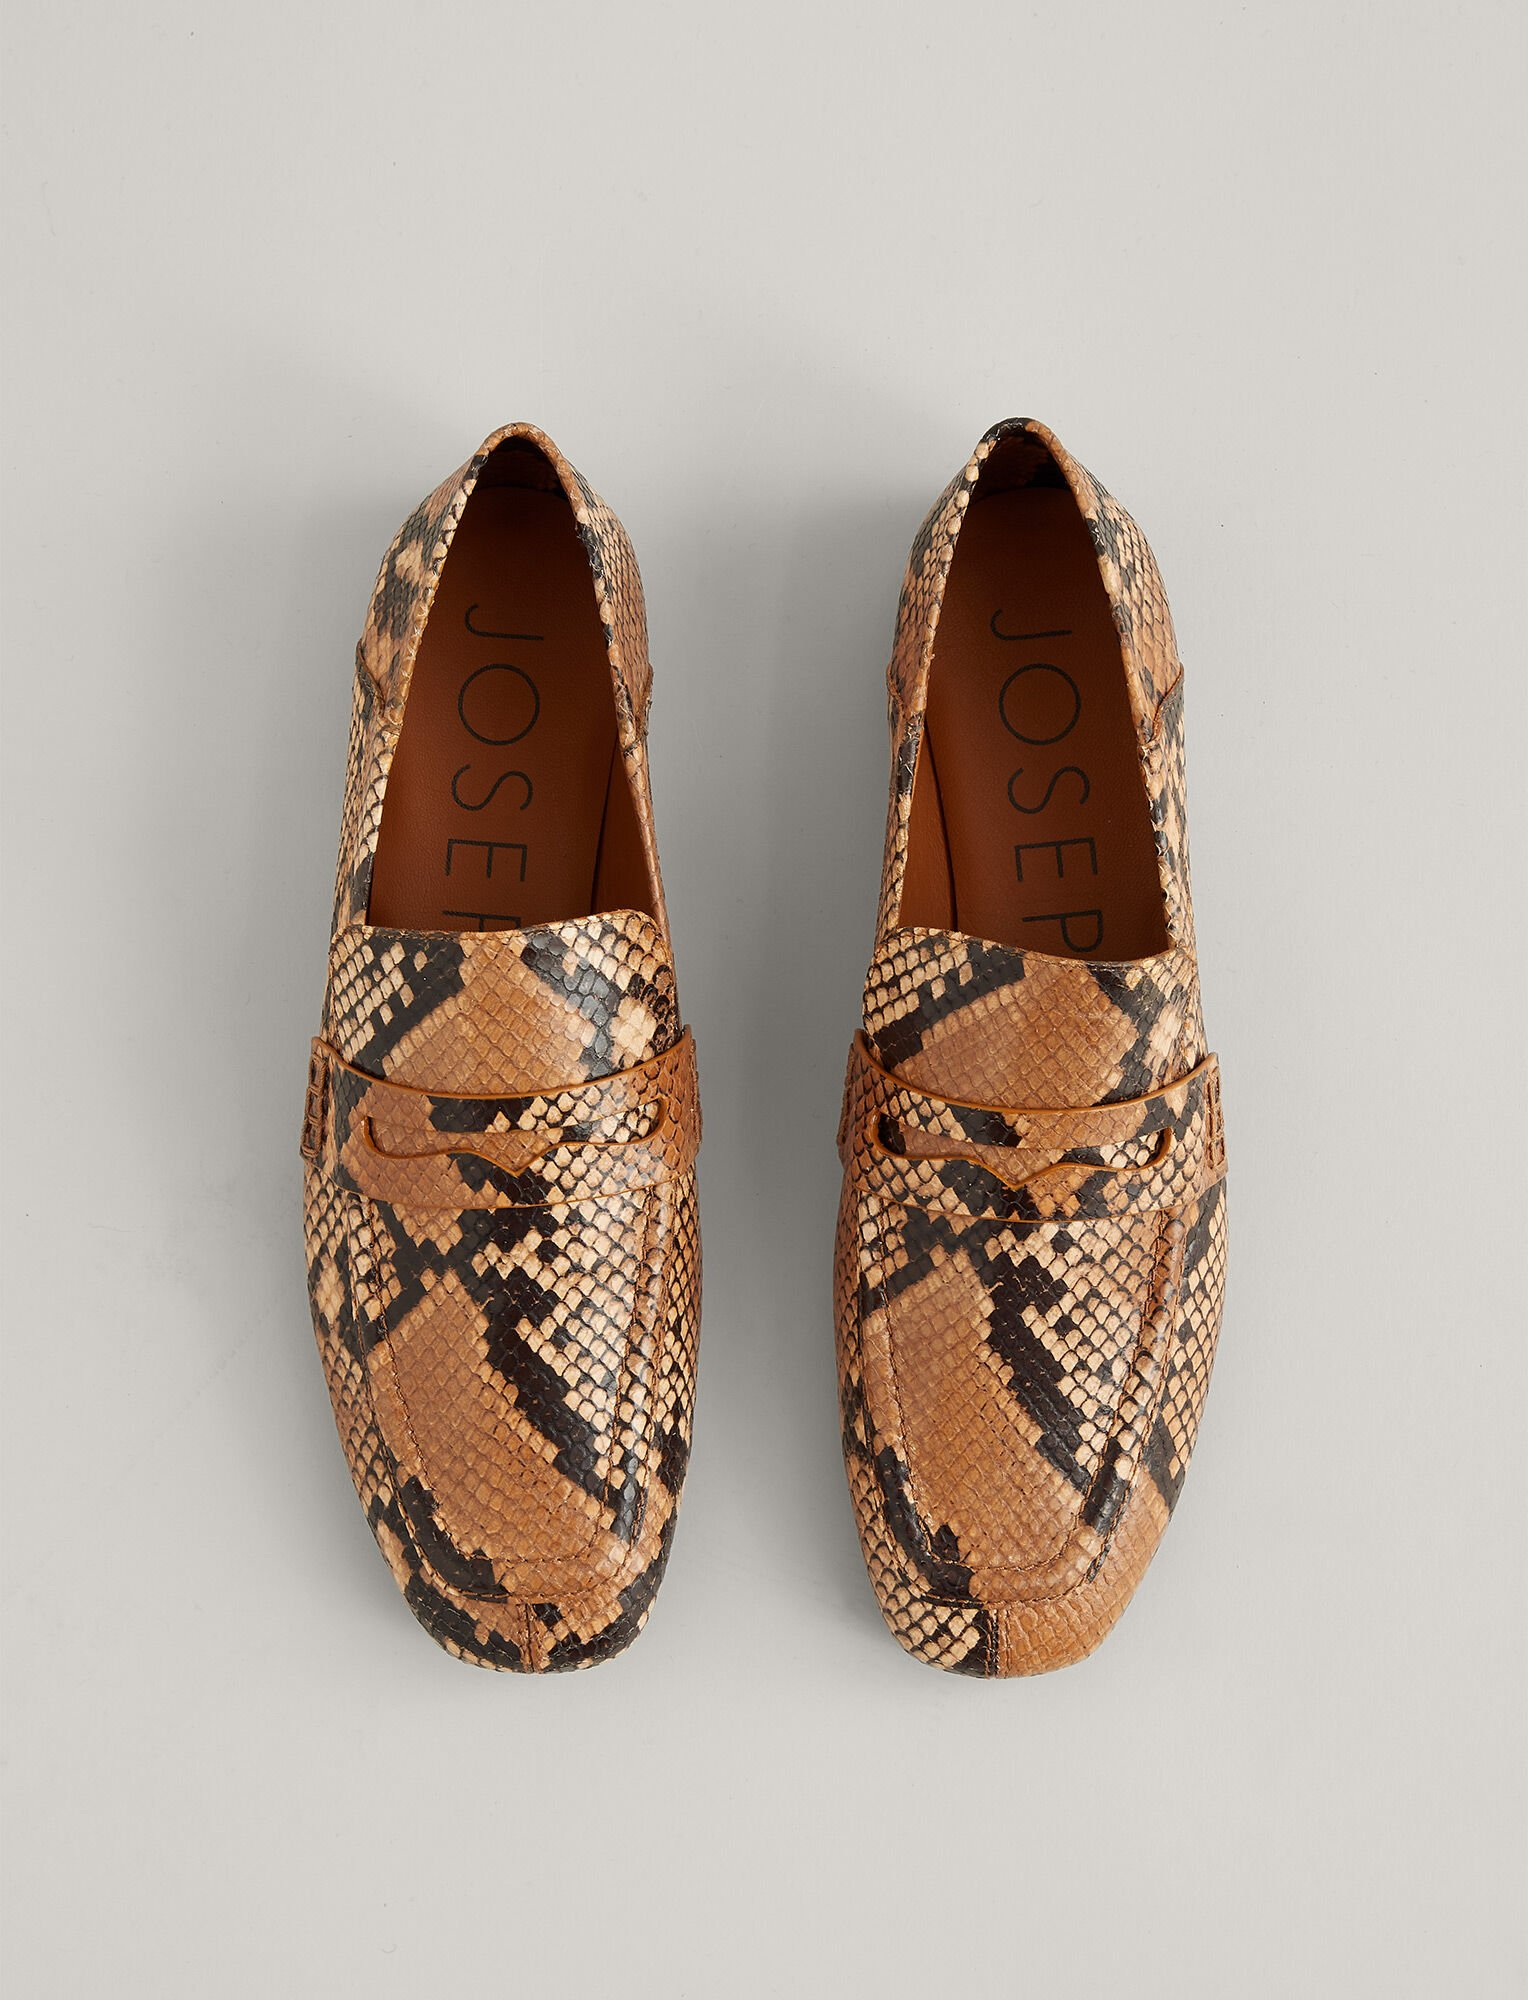 Joseph, Bakhta Leather Loafer, in CARAMEL/GREY